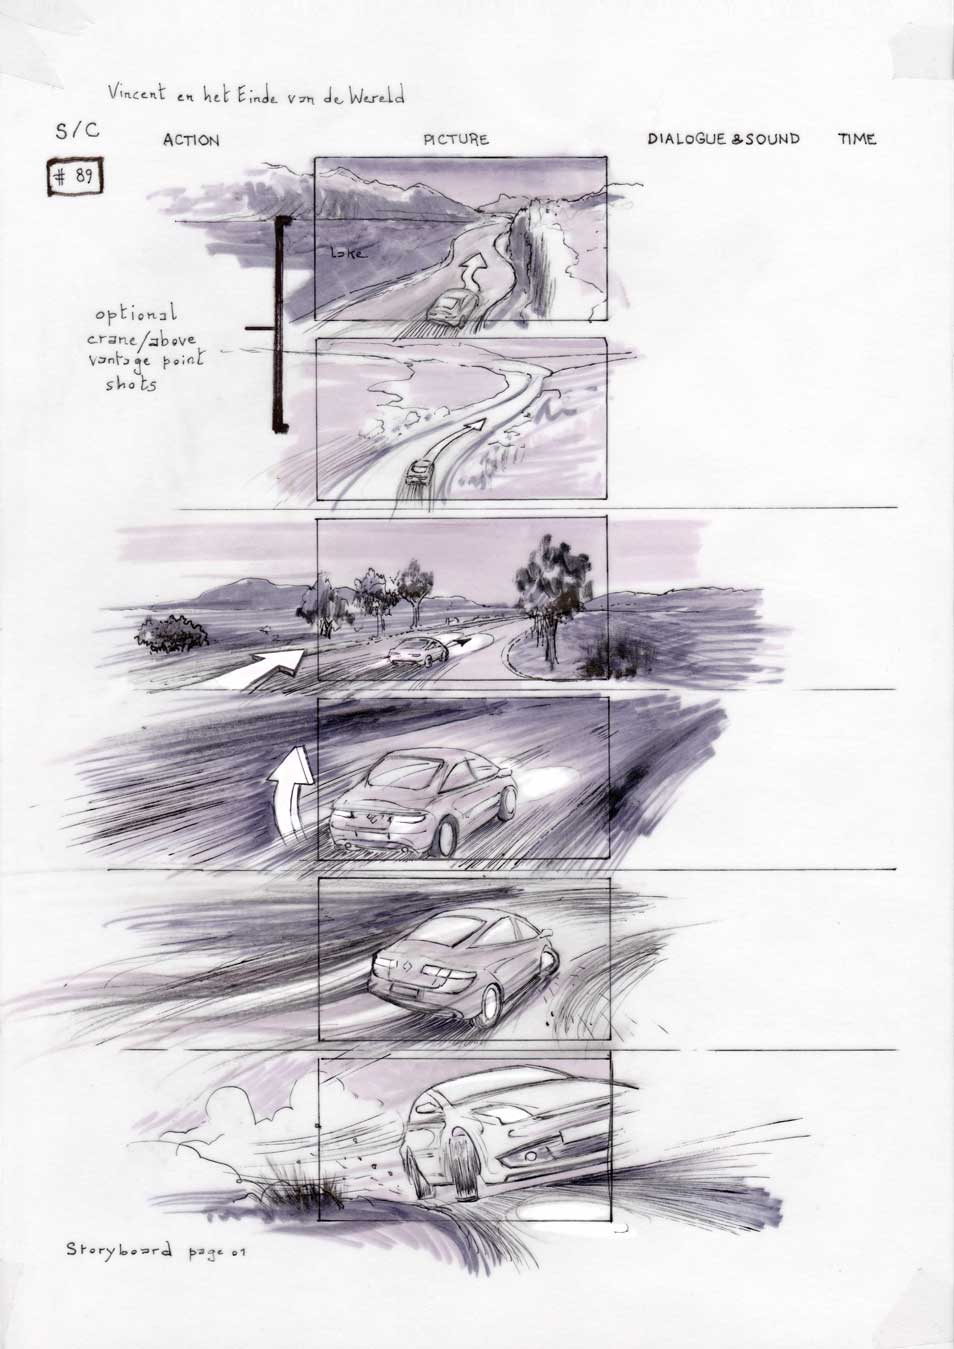 Vincent and the End of the World storyboard 01